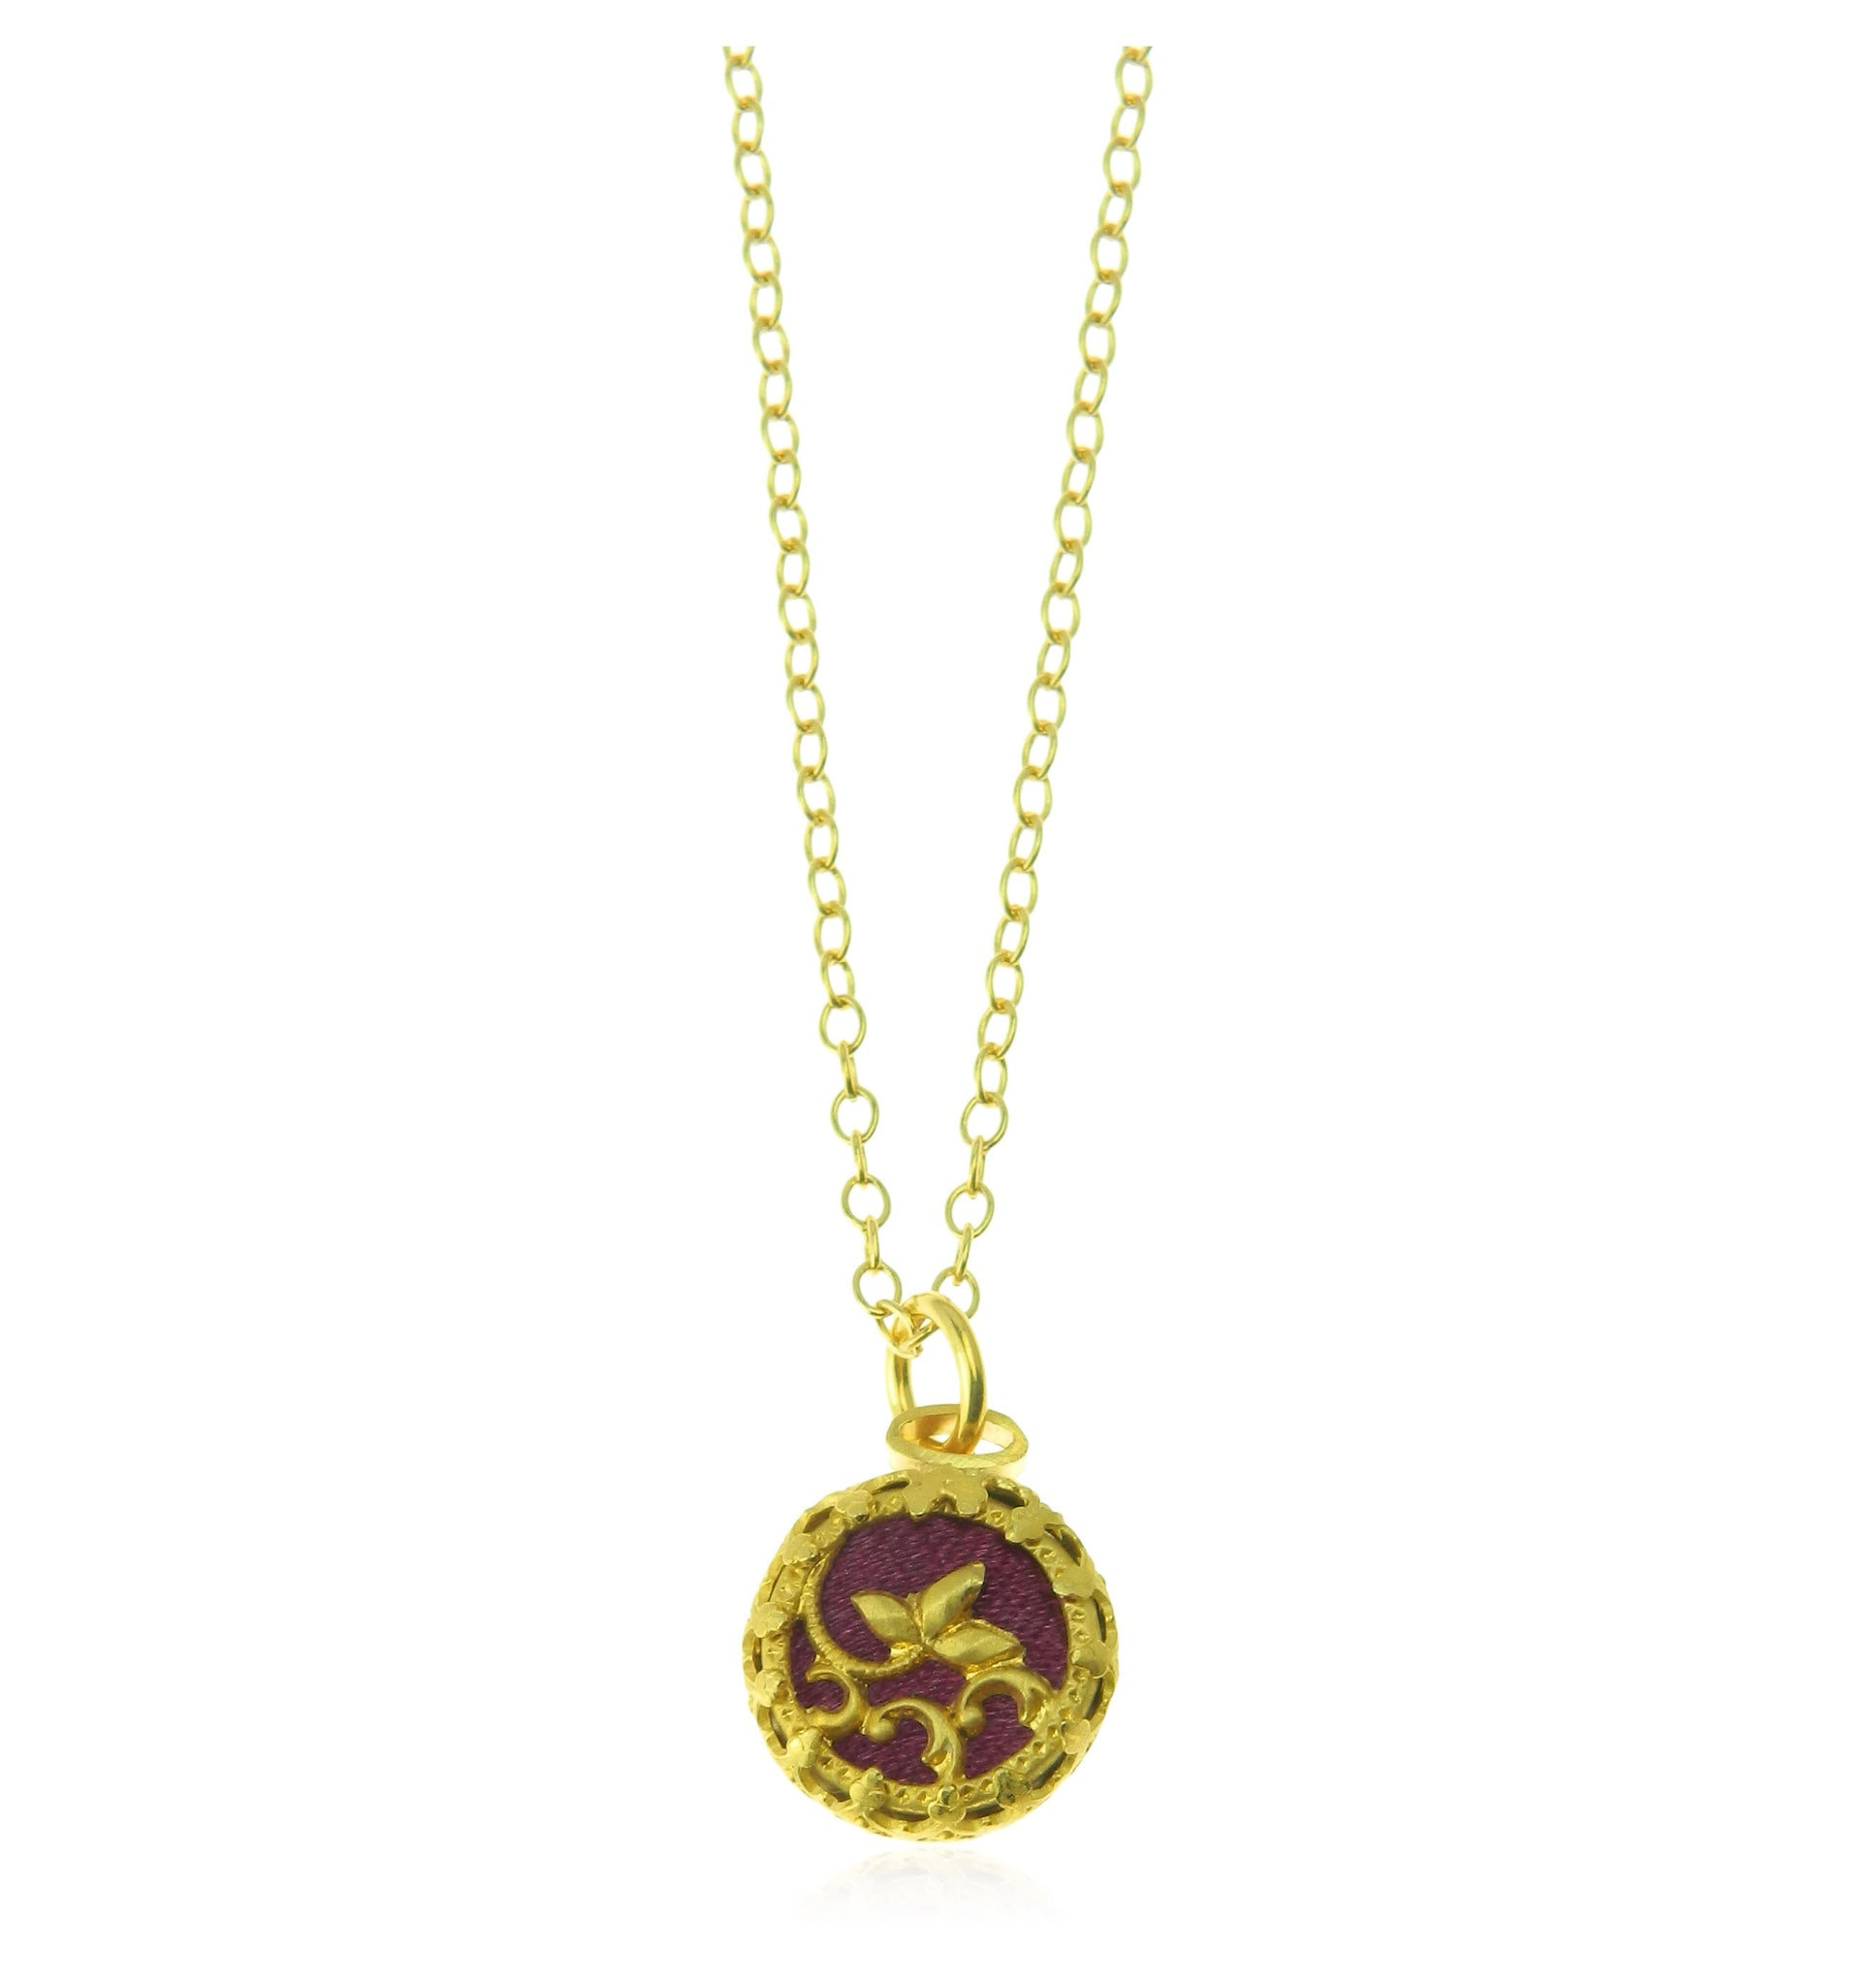 Burgundy pendant and chain